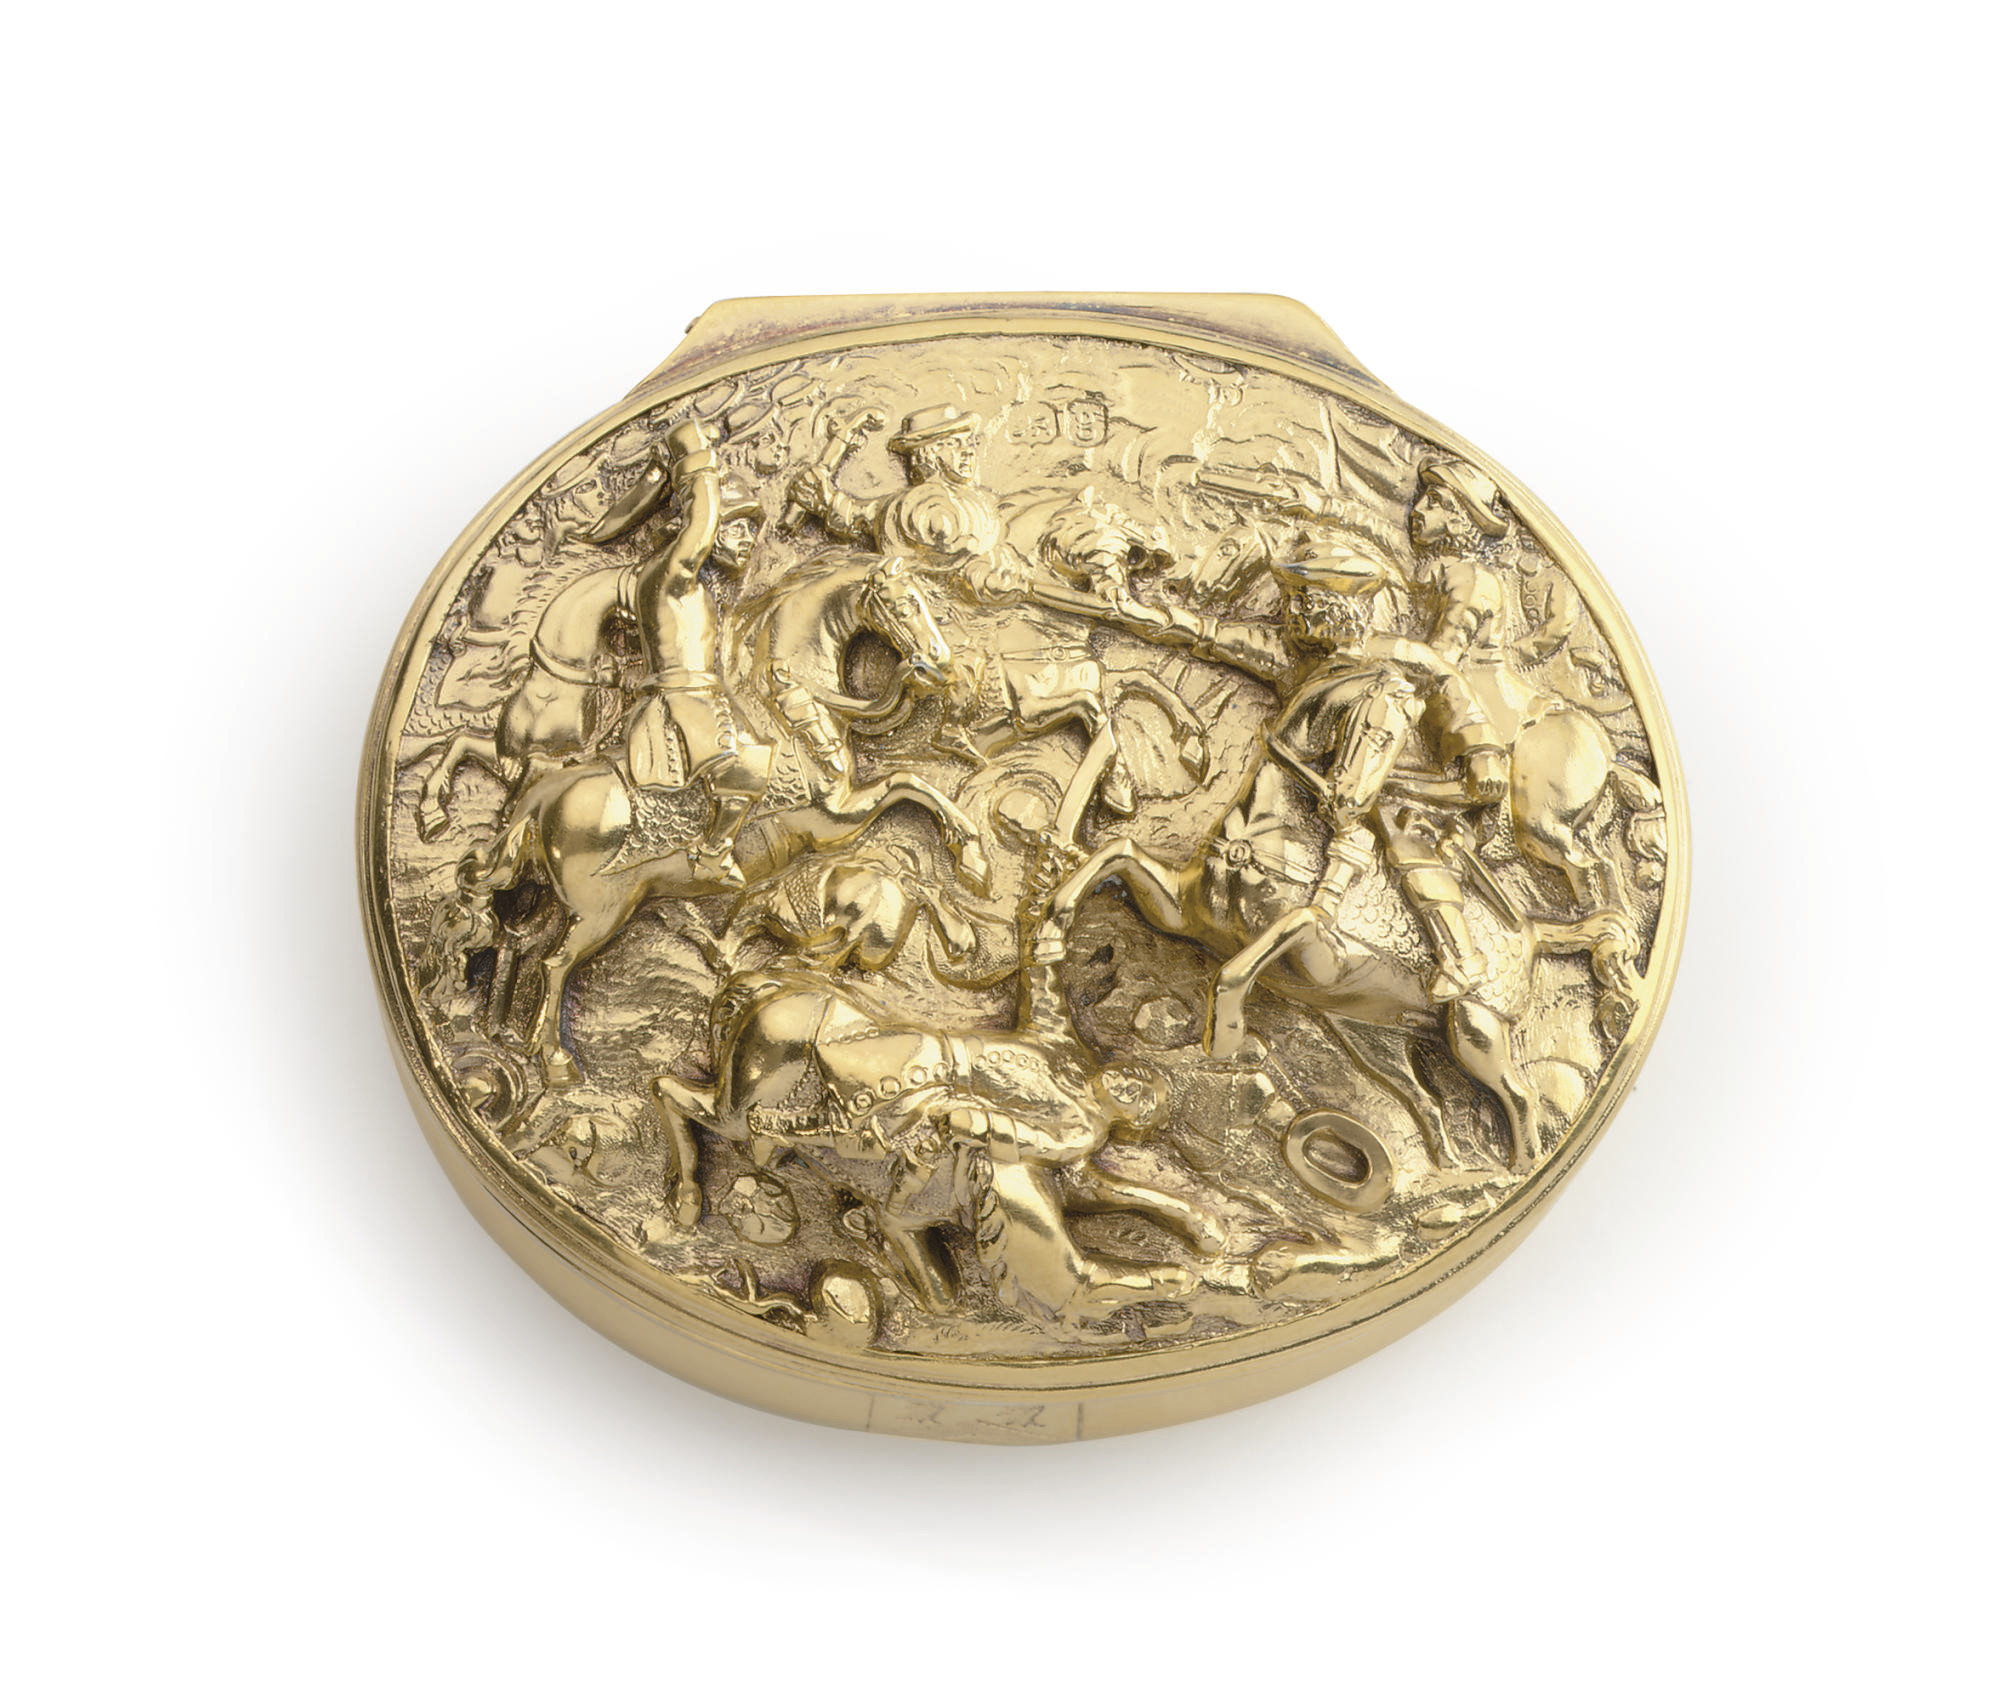 A GEORGE IV SILVER-GILT SNUFF BOX